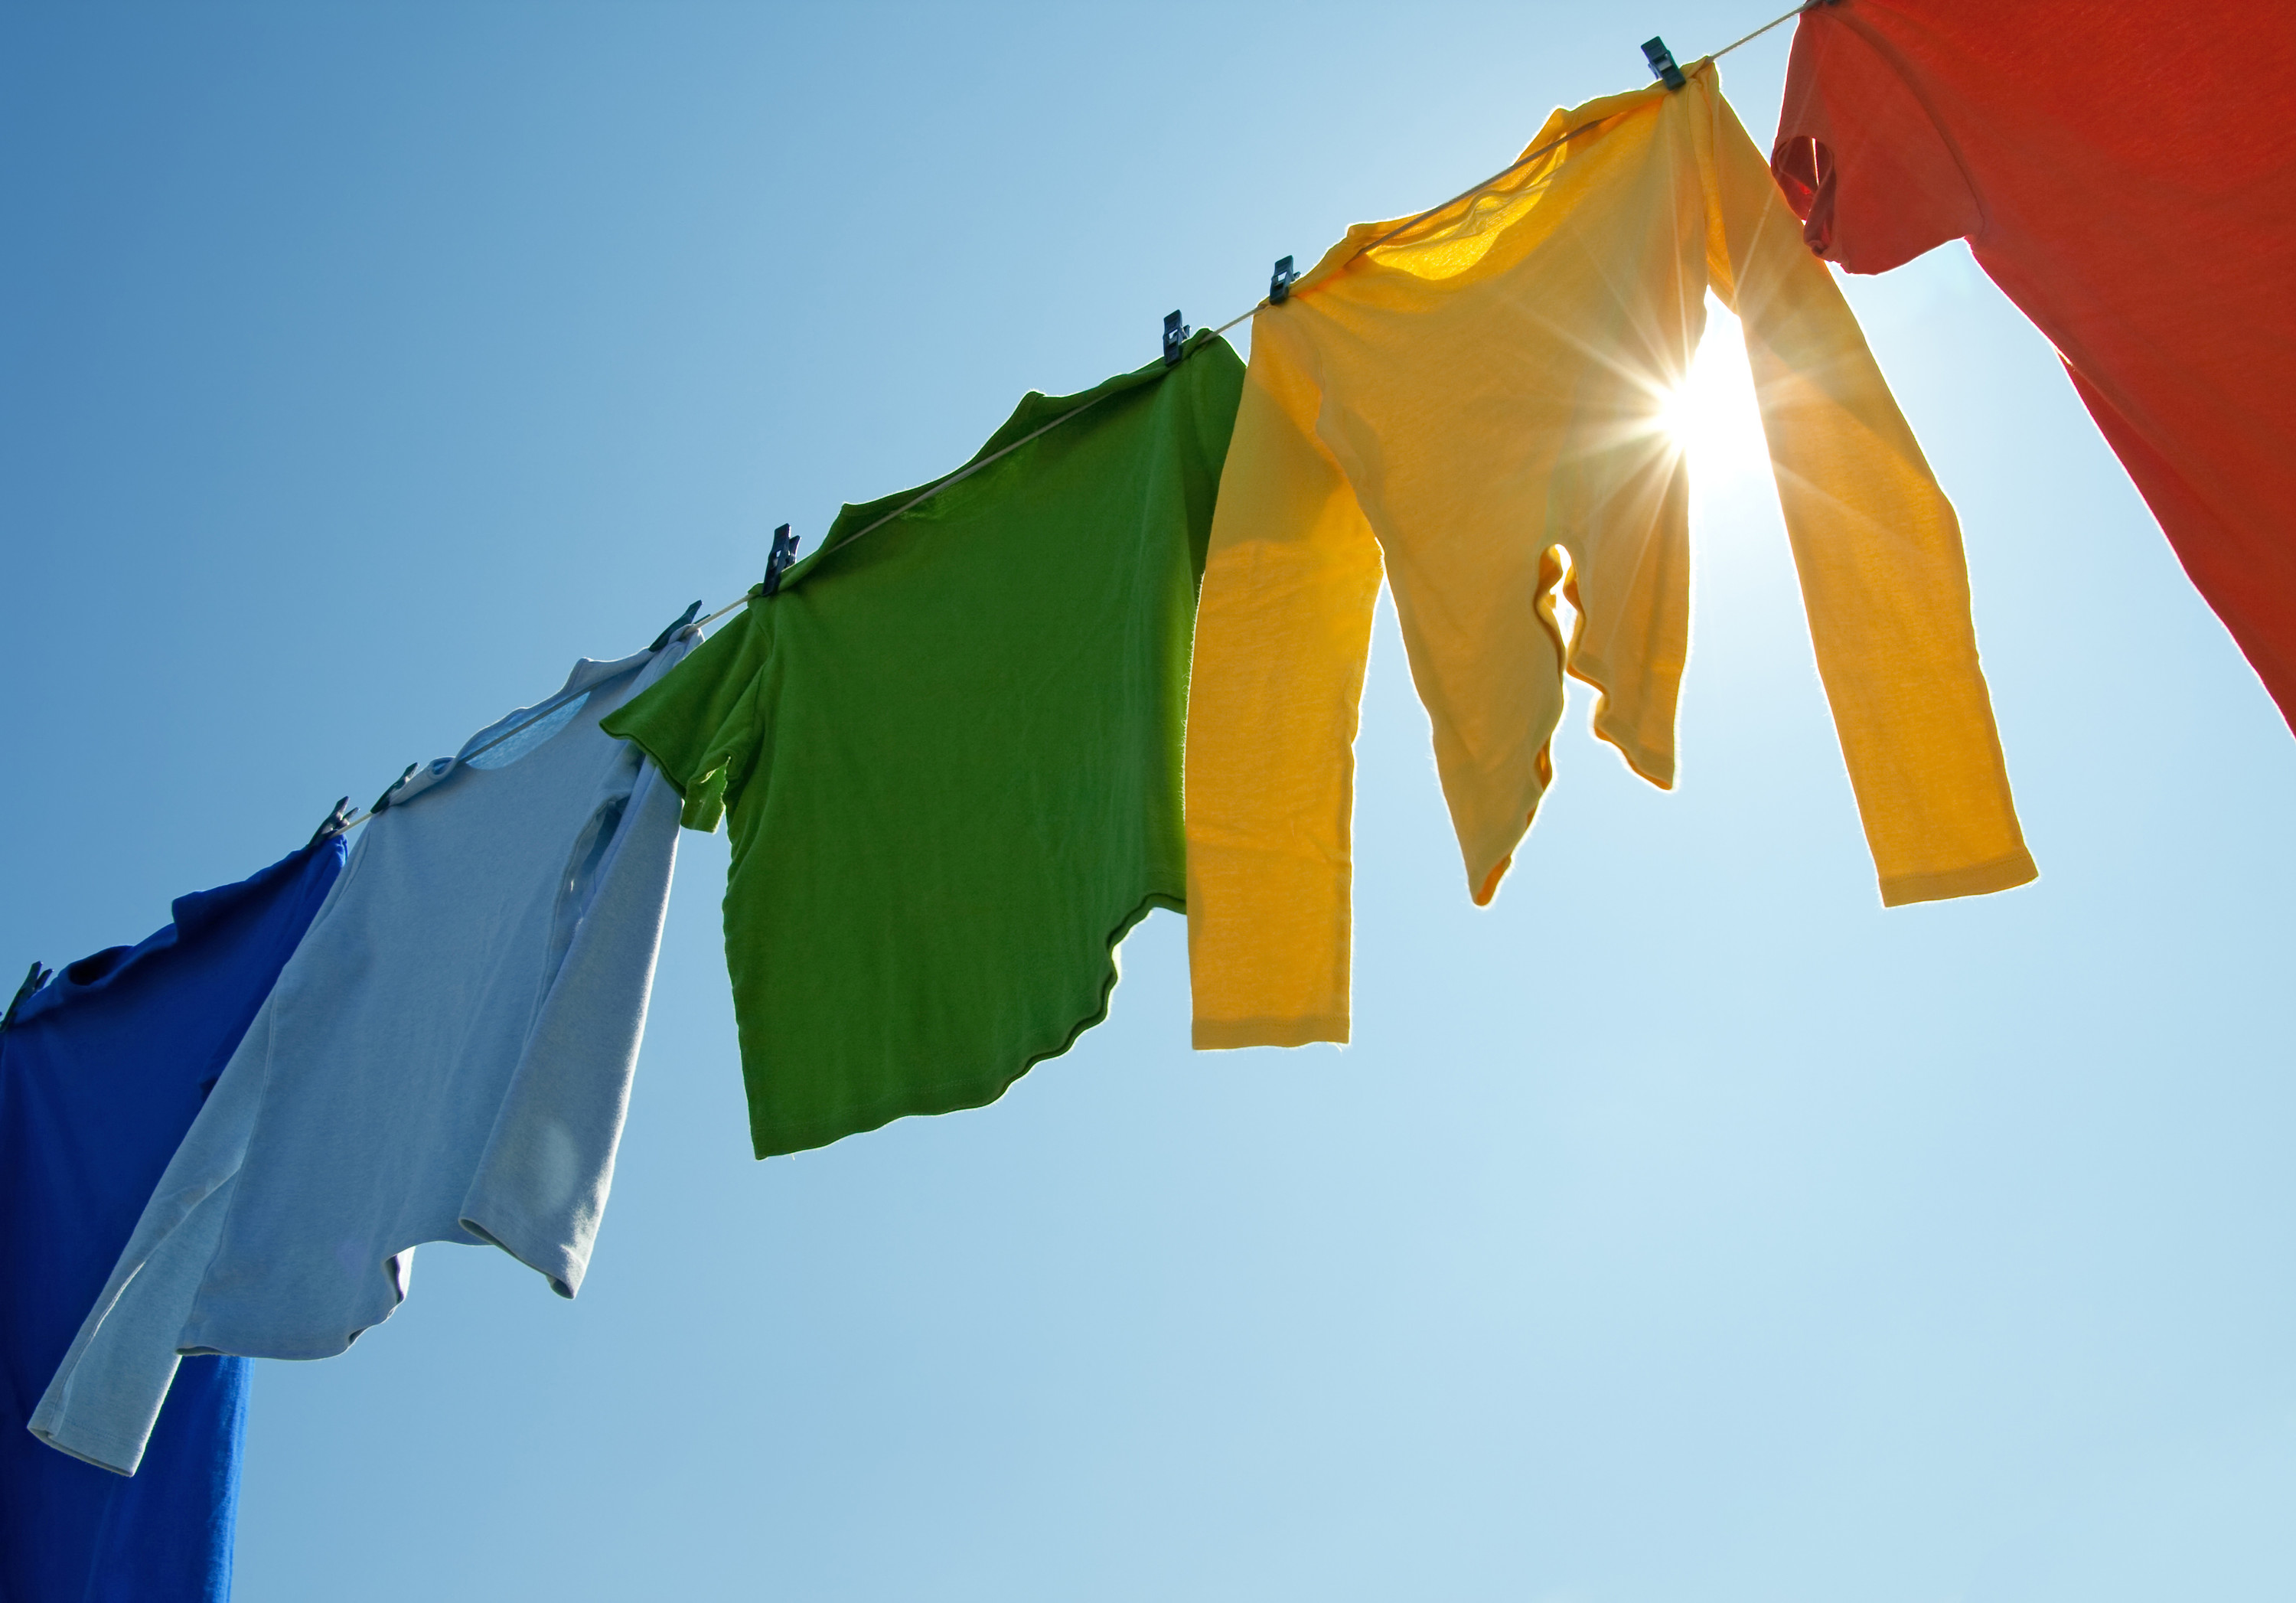 8 Reasons To Line-Dry Your Laundry